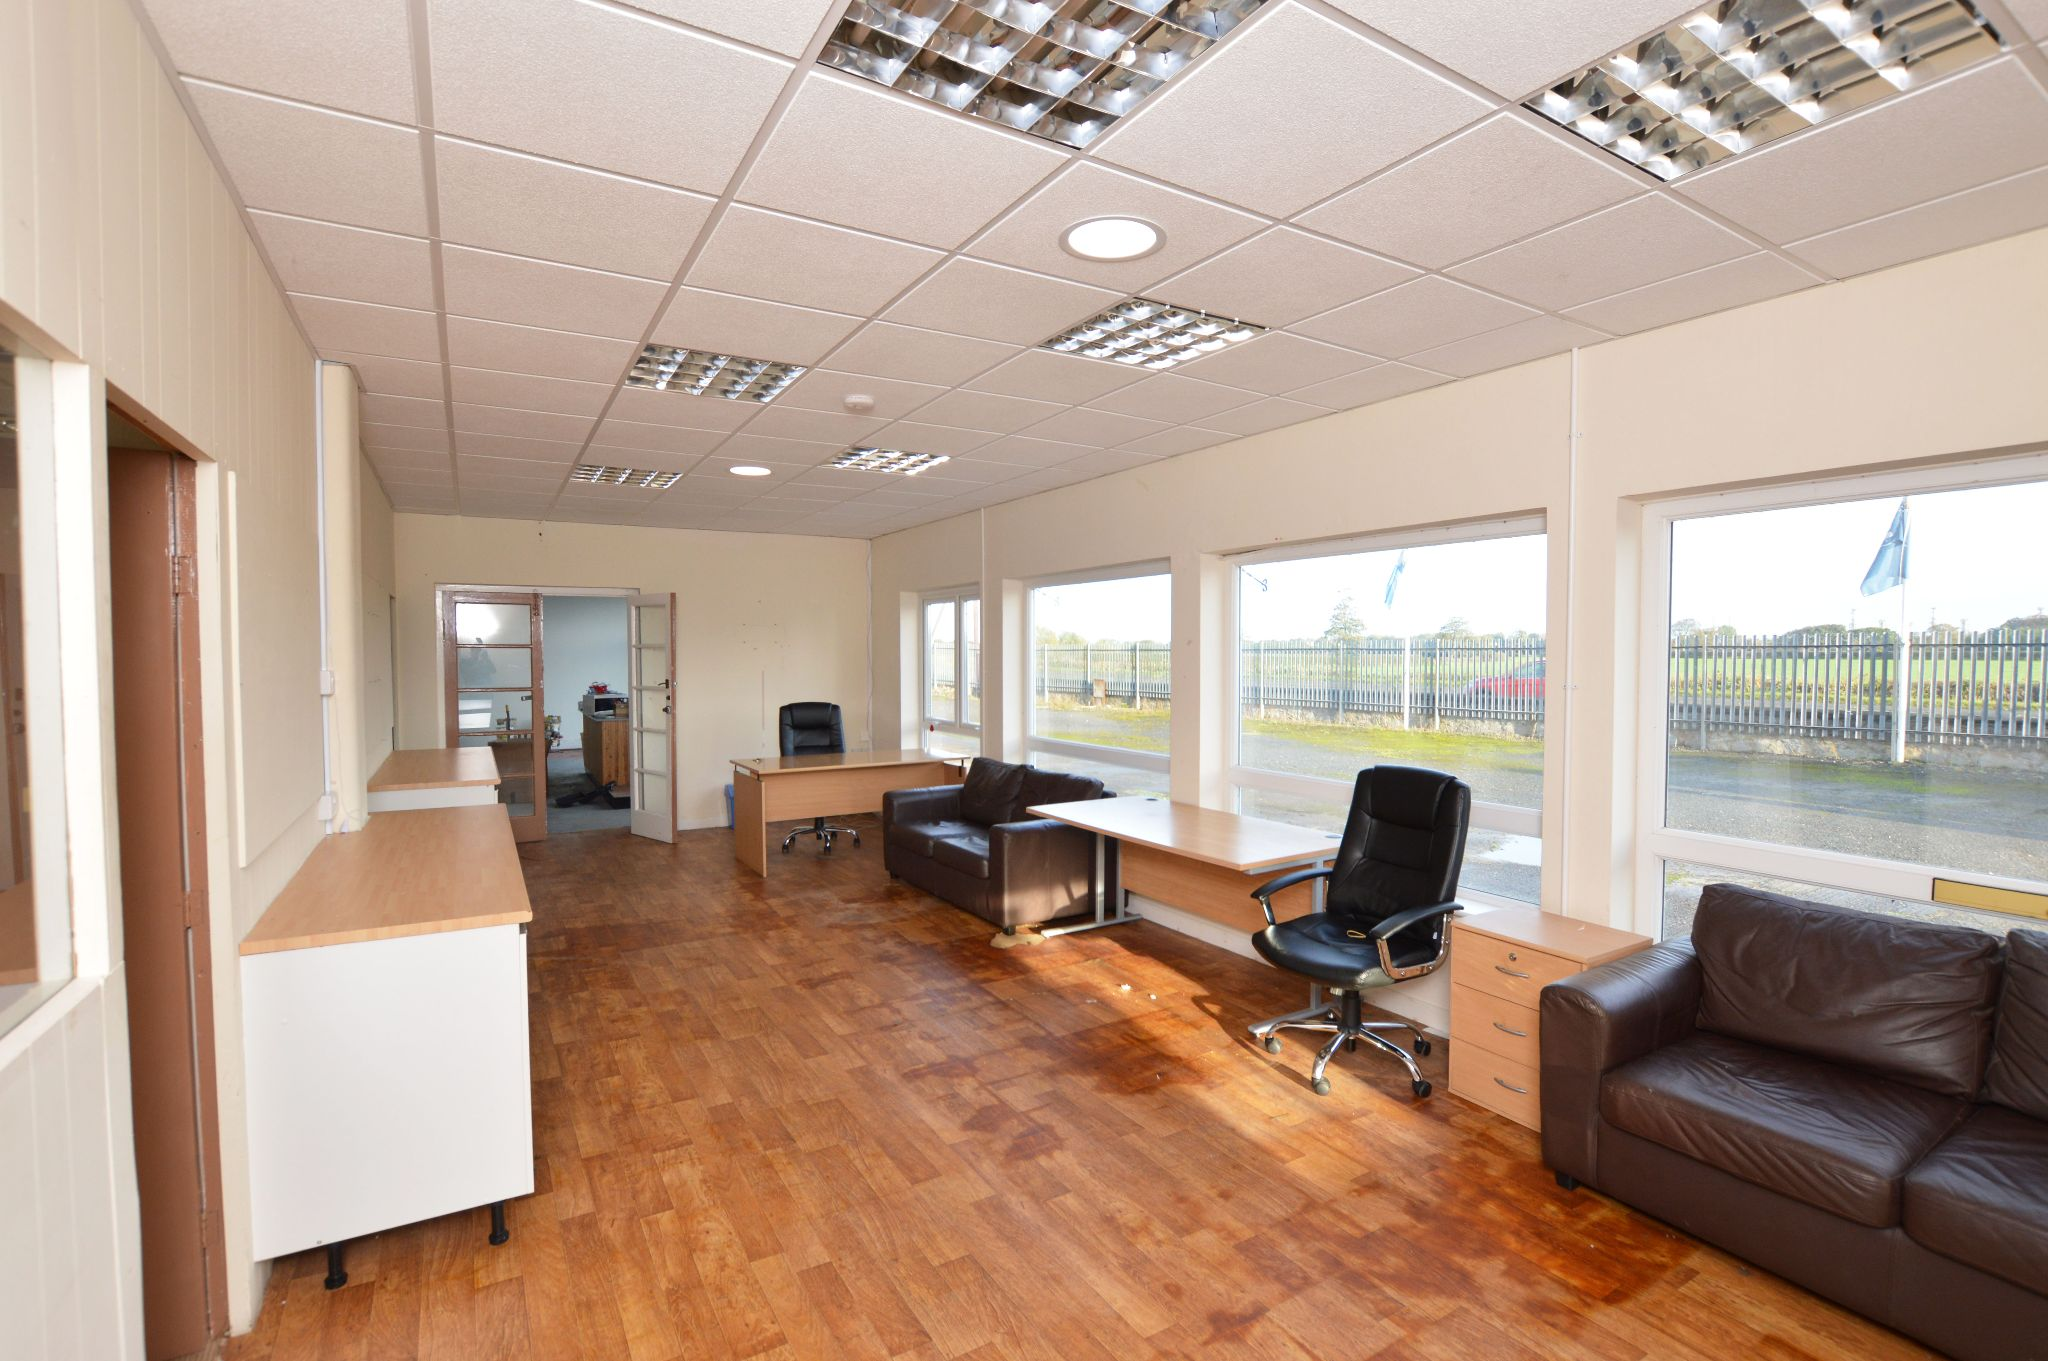 Land For Sale in Holywell - Sales Office